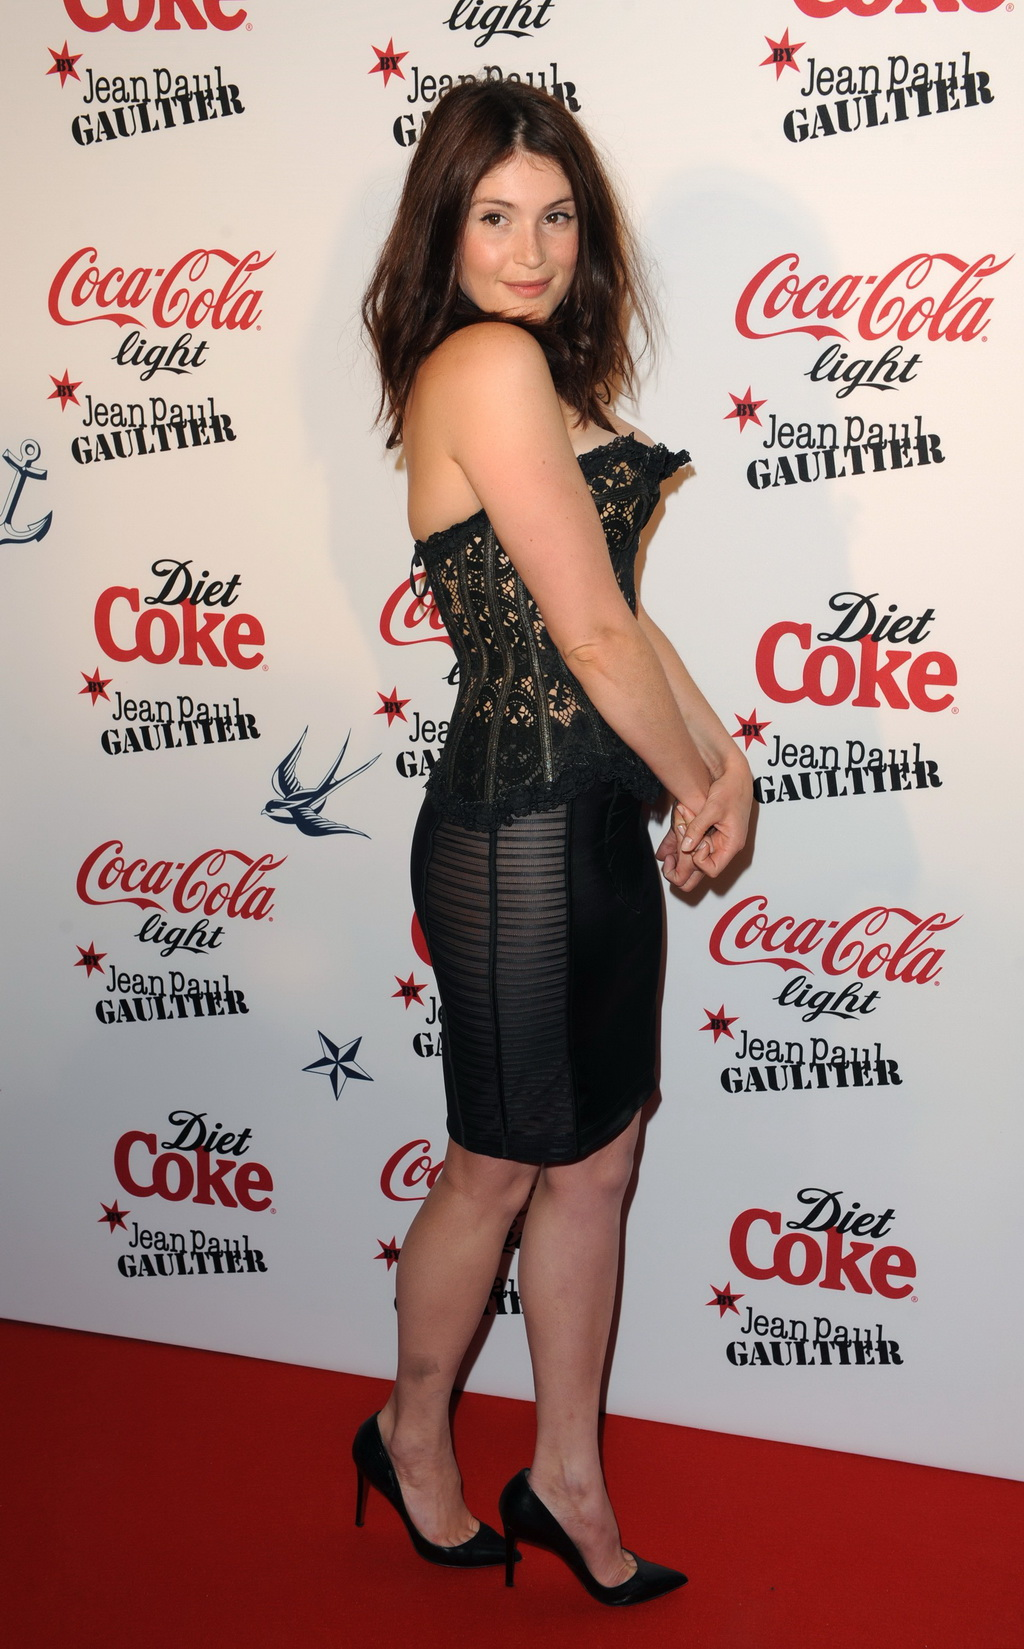 Gemma Arterton Showing Big Boobs Brales In C-Thru Corset And Mini Skirt At Jean-Paul -3316